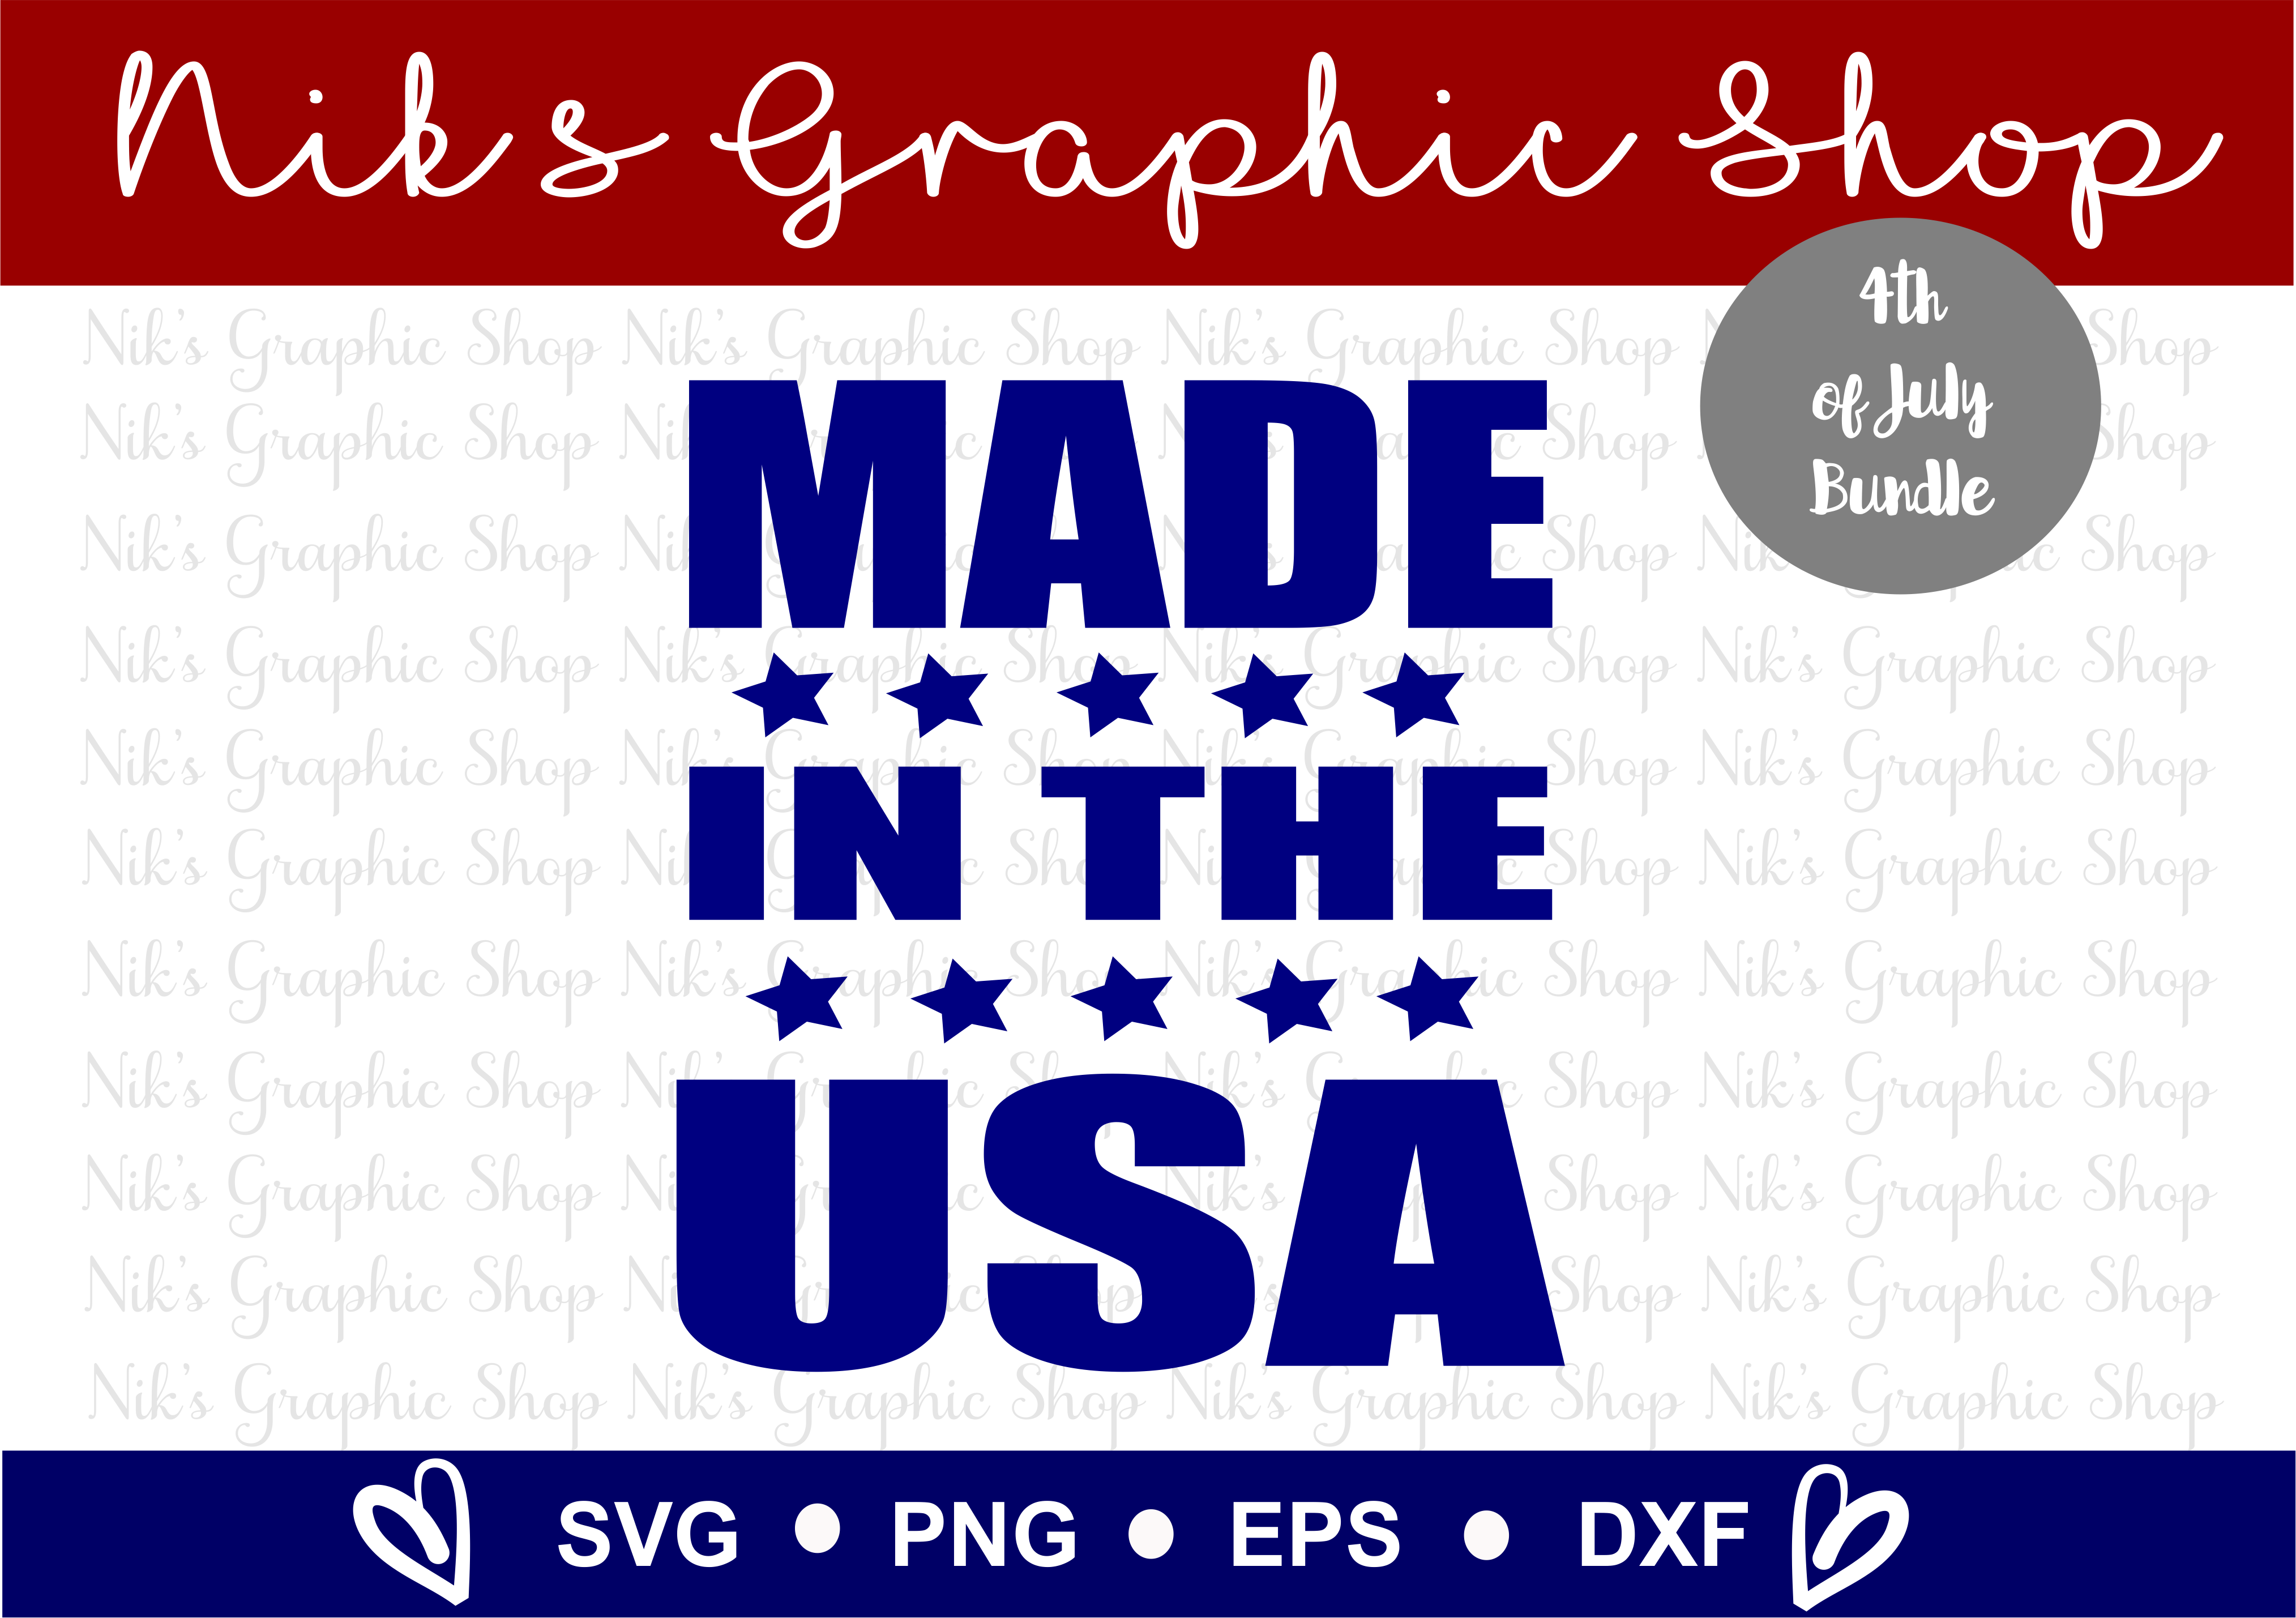 4th of July SVG, Fourth of July, July SVG, 4th SVG, Fourth example image 7